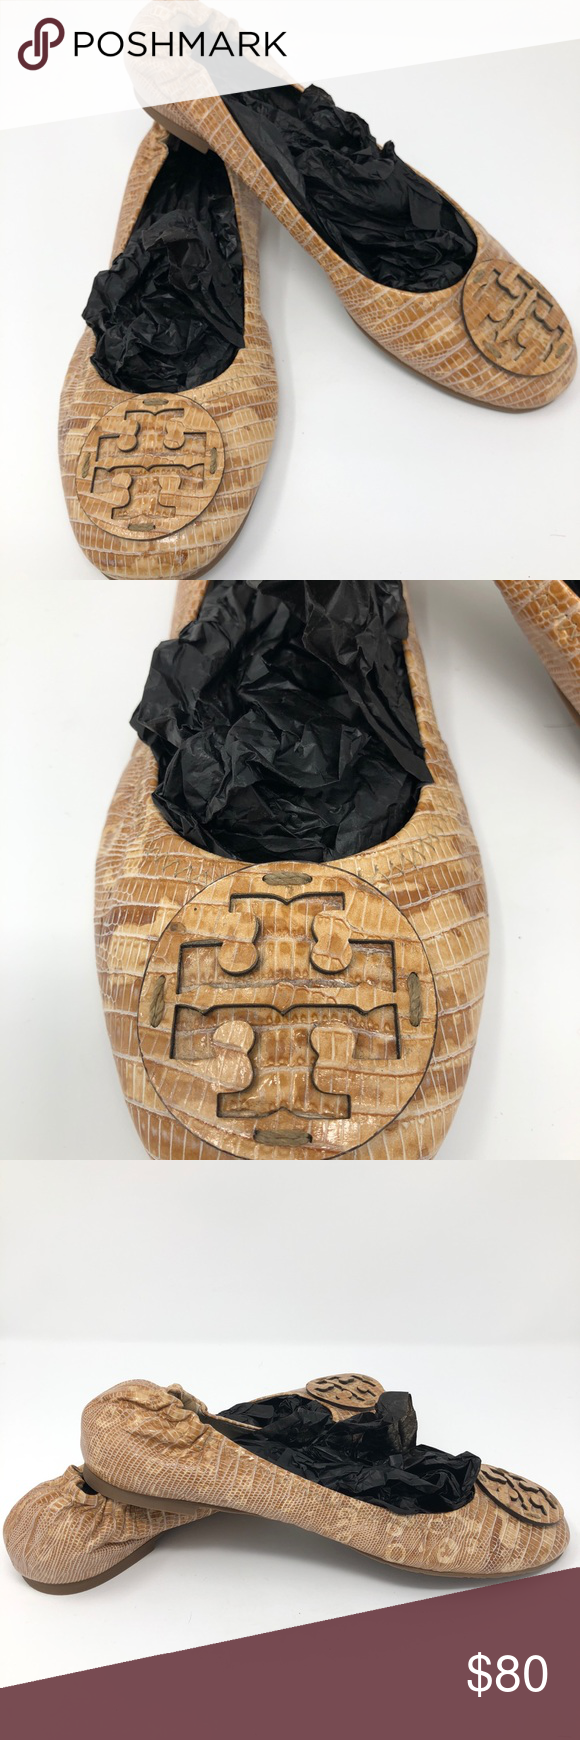 fe8baf678a25 Brown snake skin Tory Burch Reva Flat 10.5 Gorgeous snake skin brown tan  family with iconic